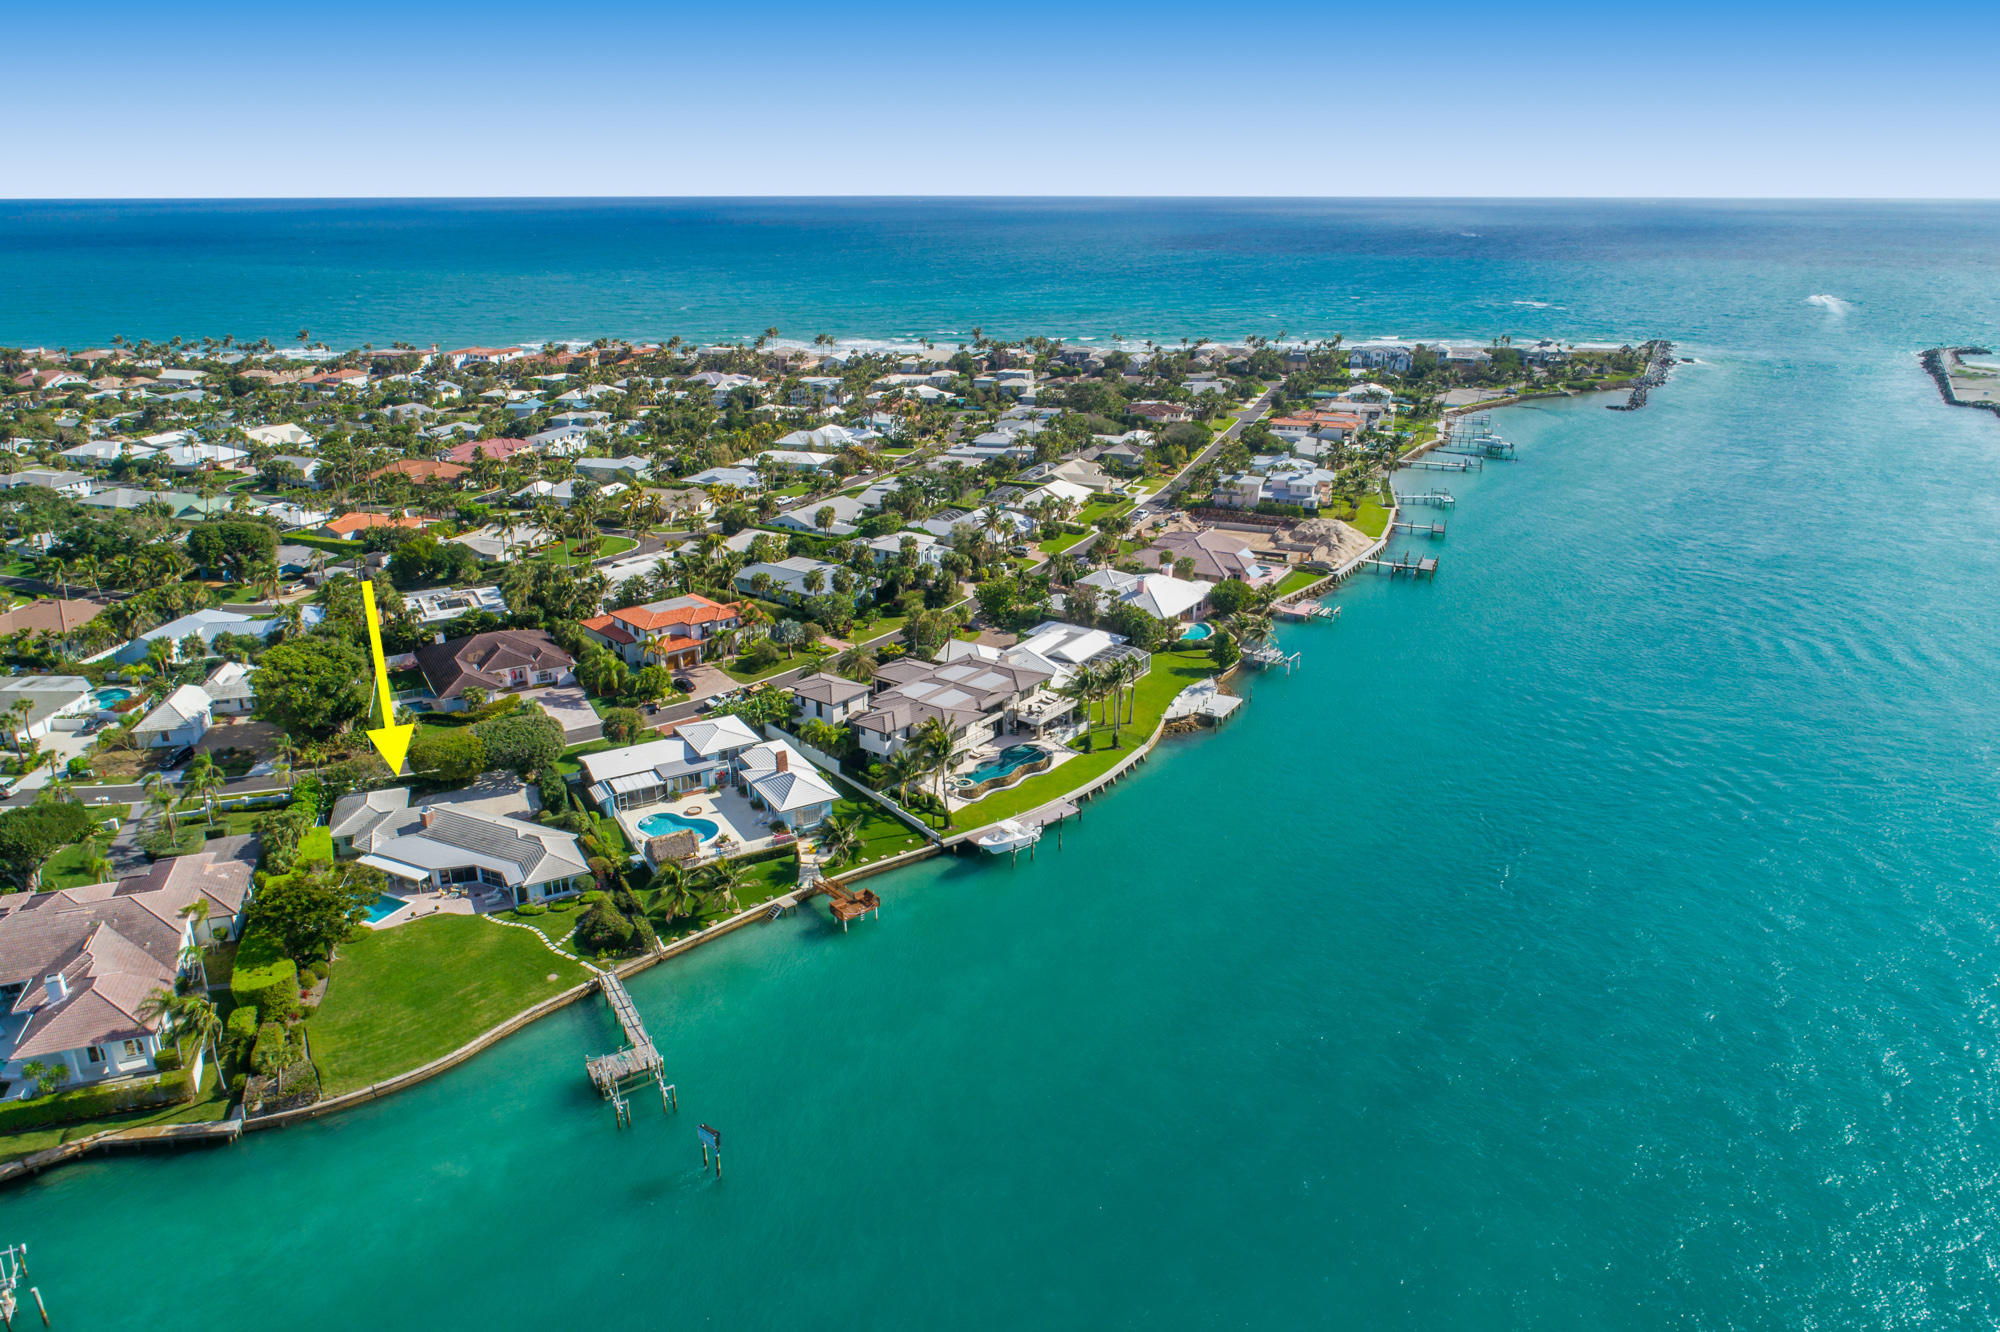 New Home for sale at 88 Lighthouse Drive in Jupiter Inlet Colony